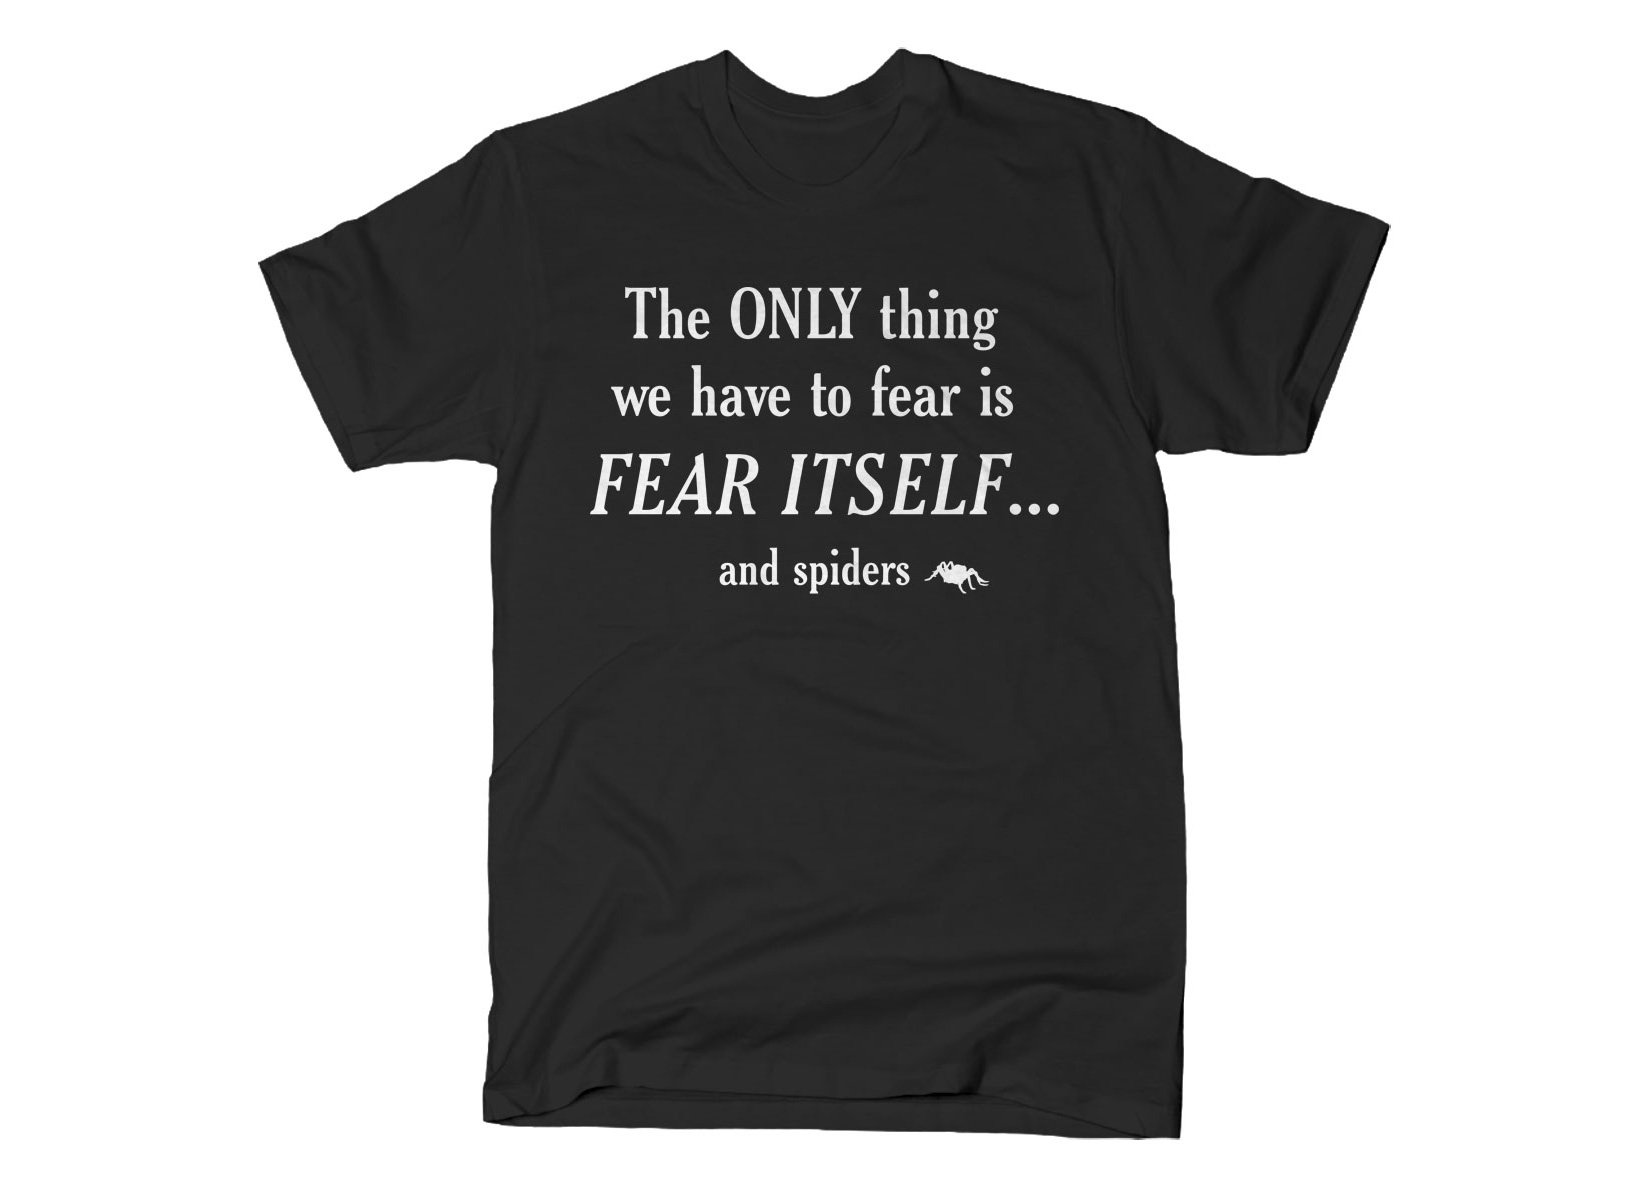 The only thing we have to fear on Mens T-Shirt